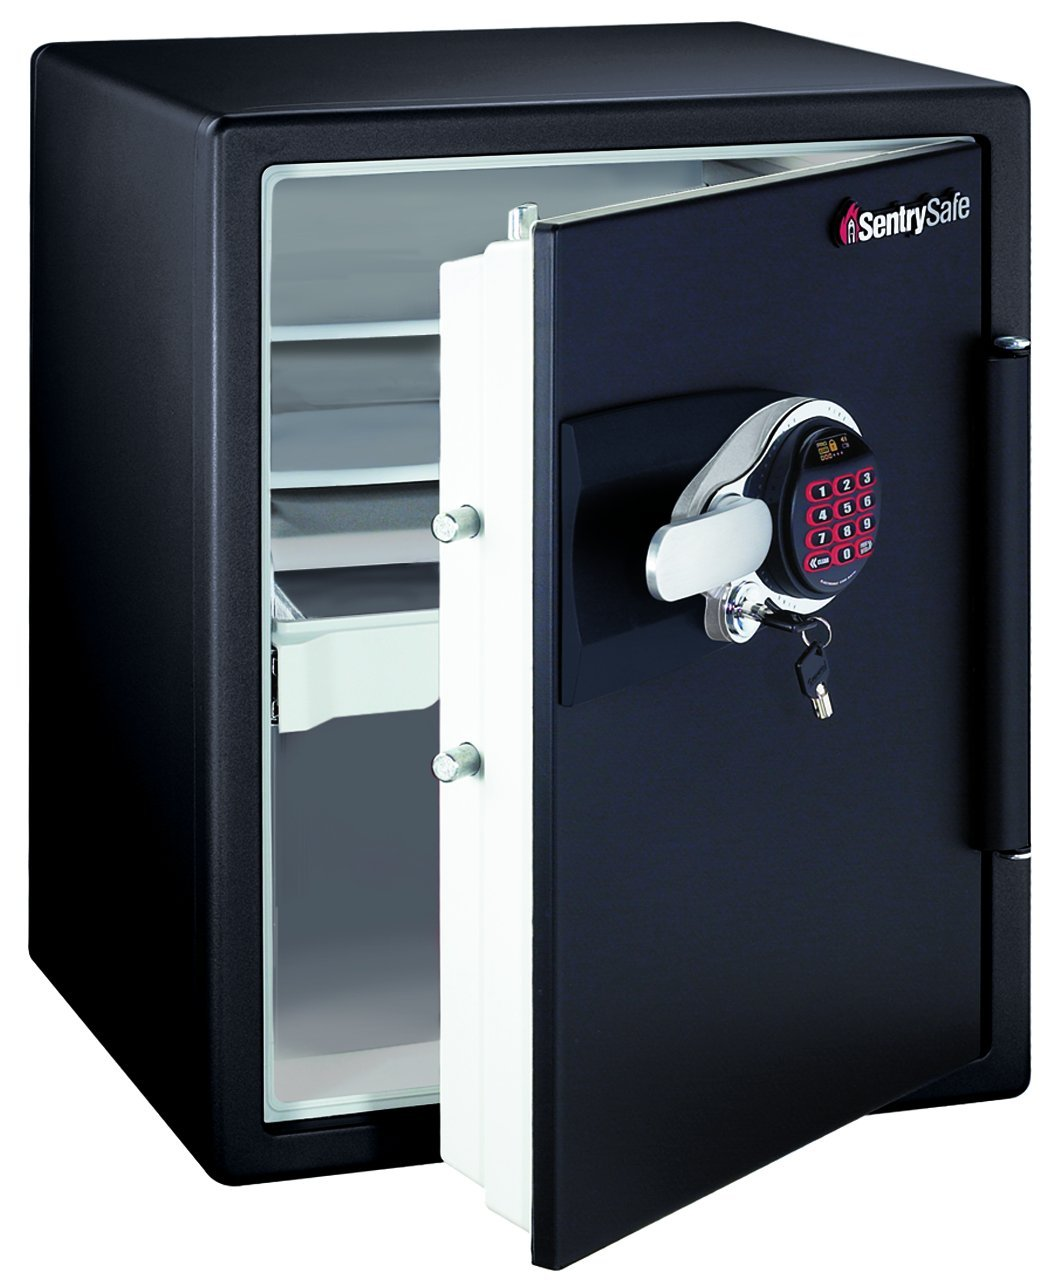 amazoncom sentrysafe ds5781 safe 1hour fireproof electronic safe 2 cubic feet black home improvement - Sentry Safe Models